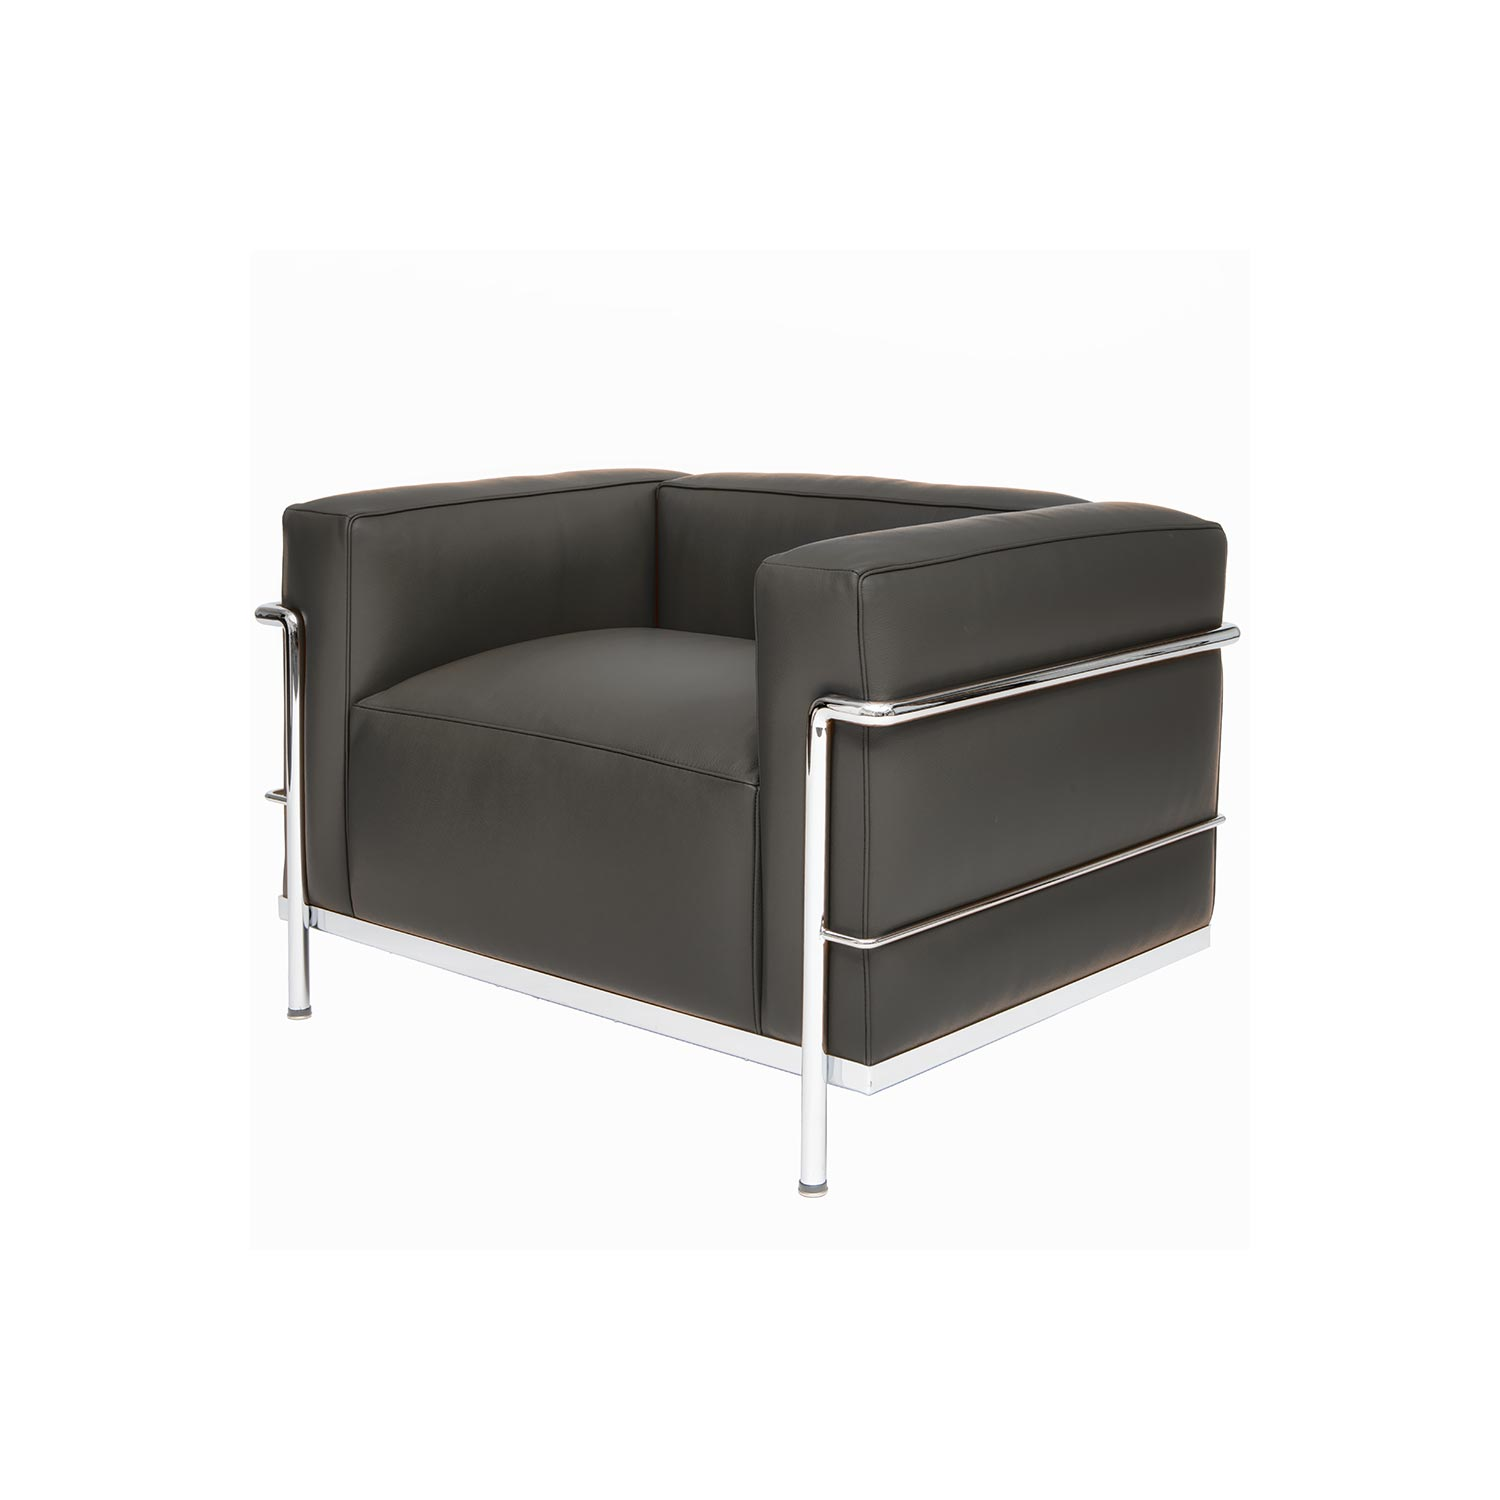 corbusier designed chair lc 31 steelform design classics. Black Bedroom Furniture Sets. Home Design Ideas